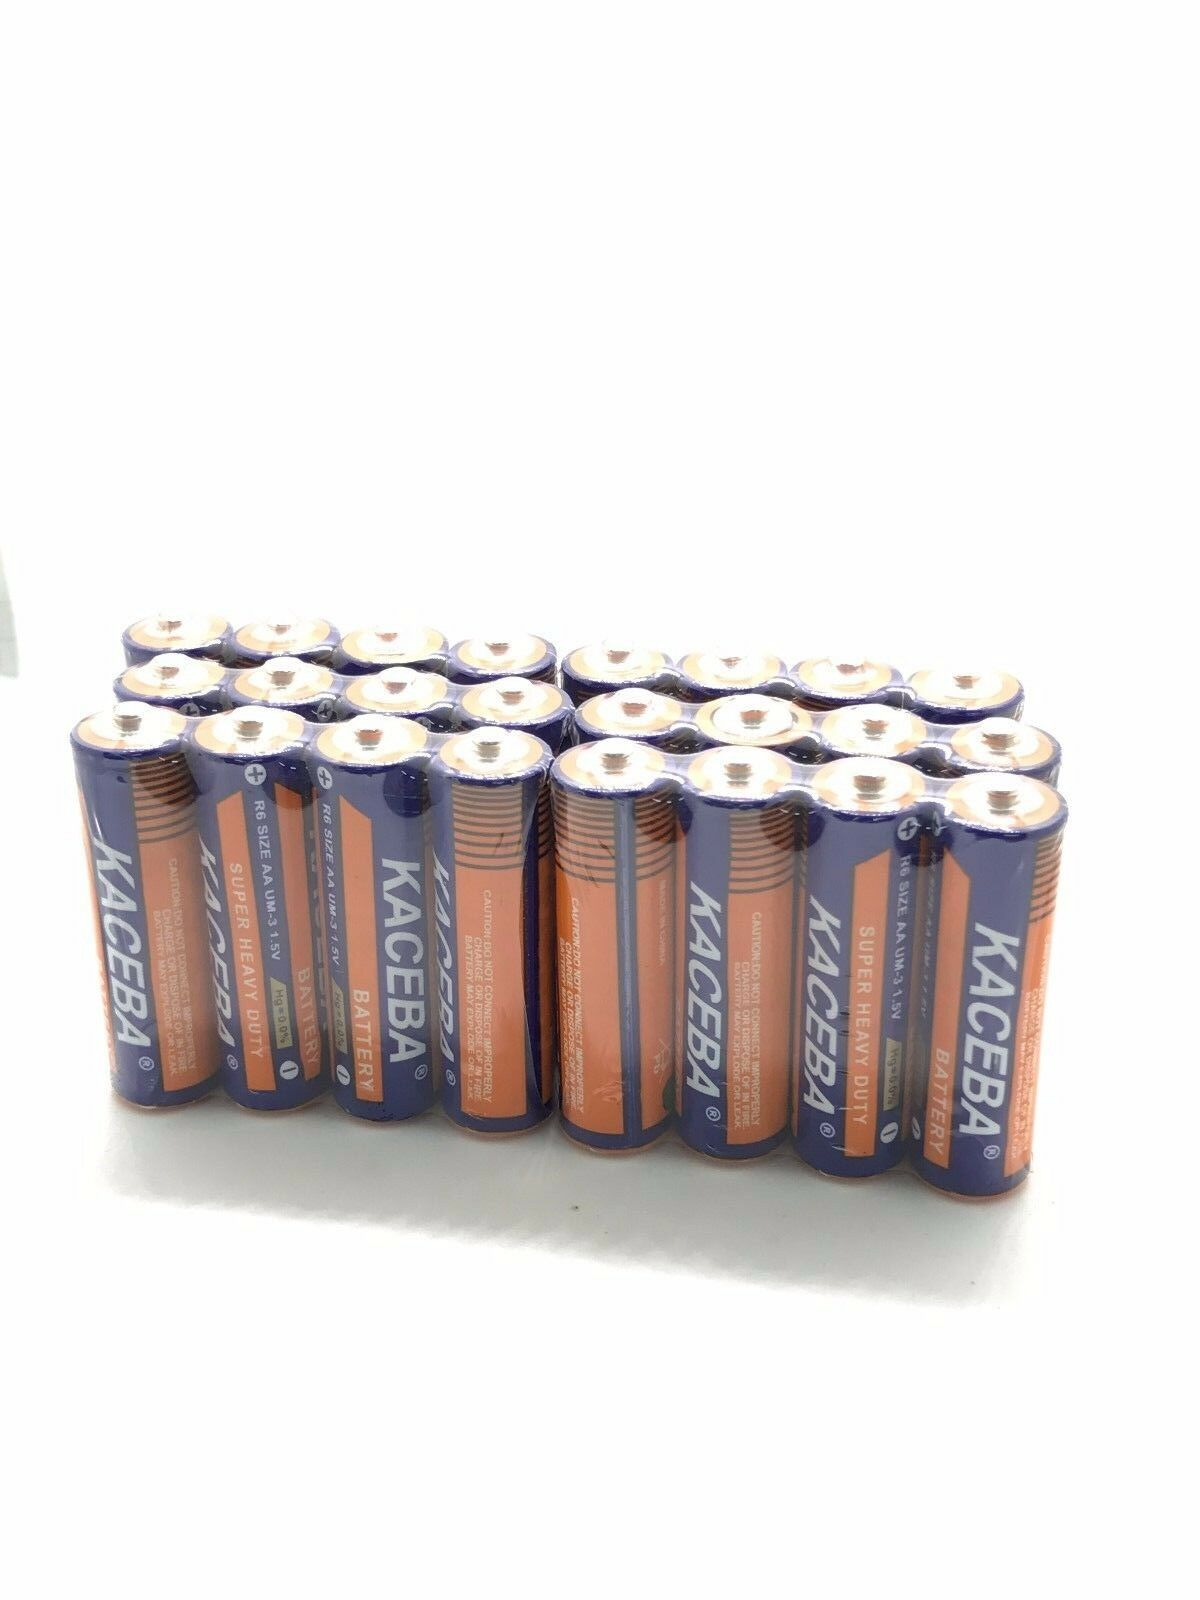 24 Pack AA Batteries Extra Heavy Duty 1.5v. Wholesale Lot Ne